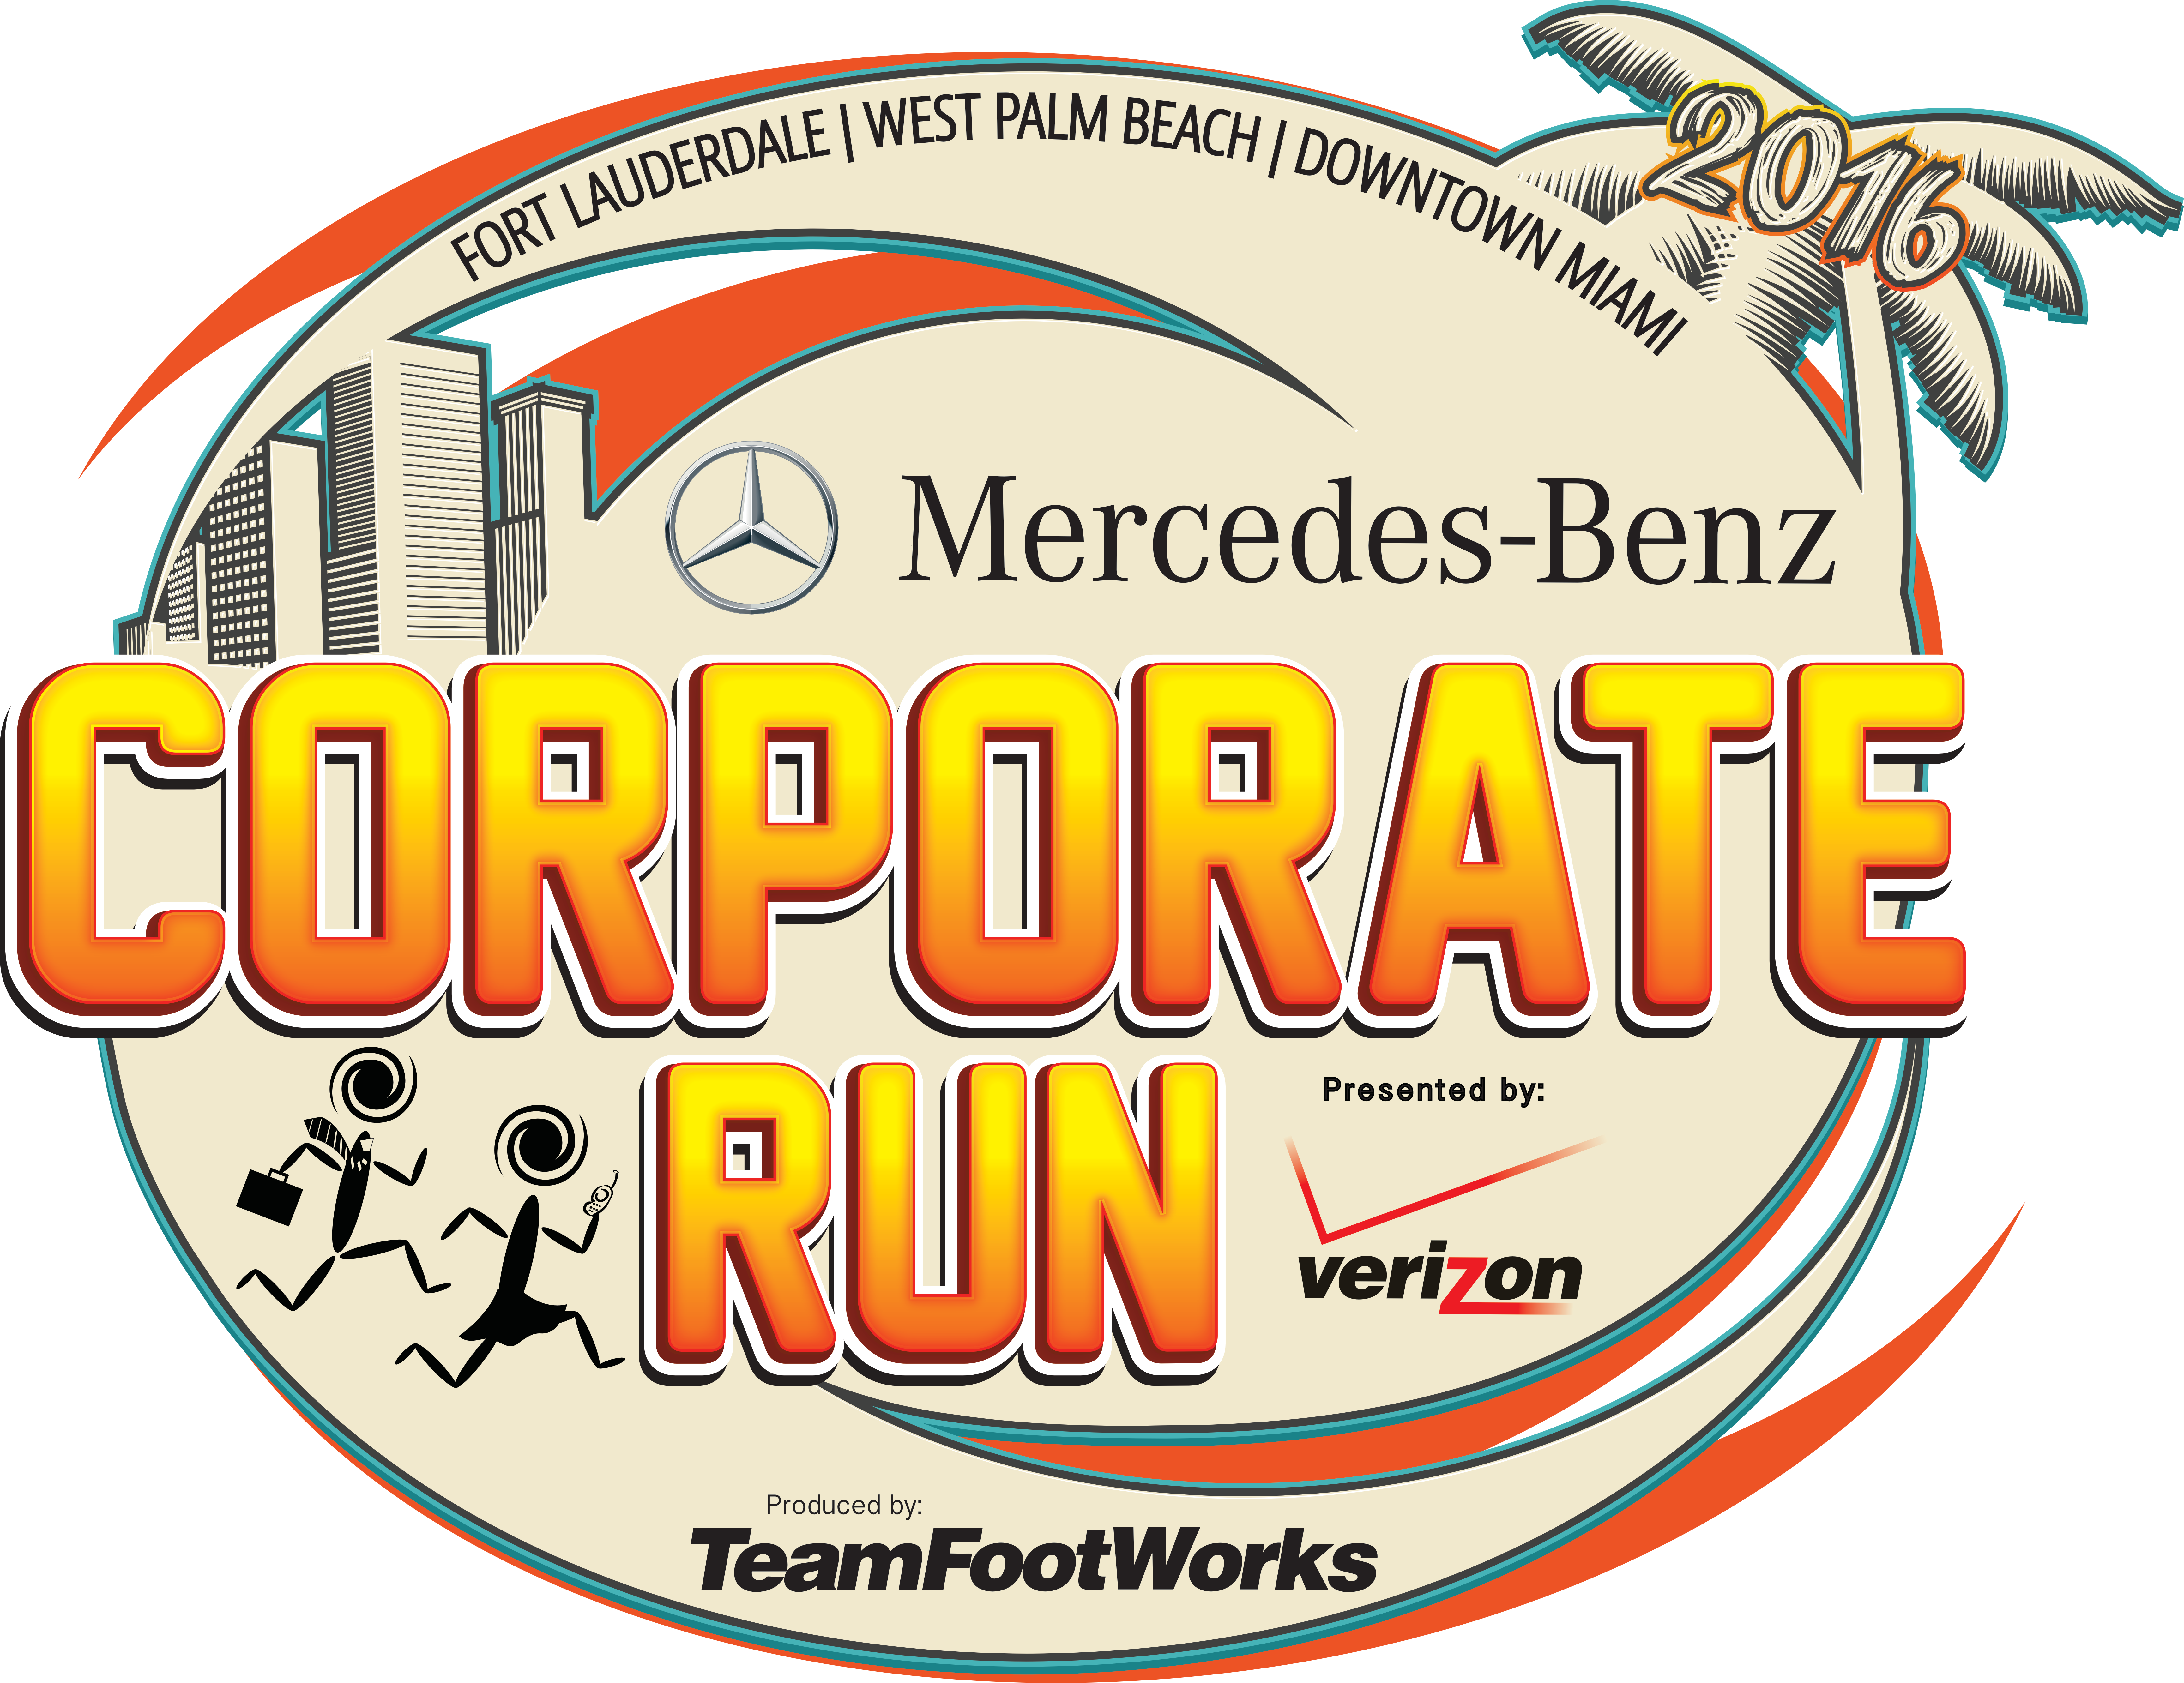 Haku for Mercedes benz corporate run 2018